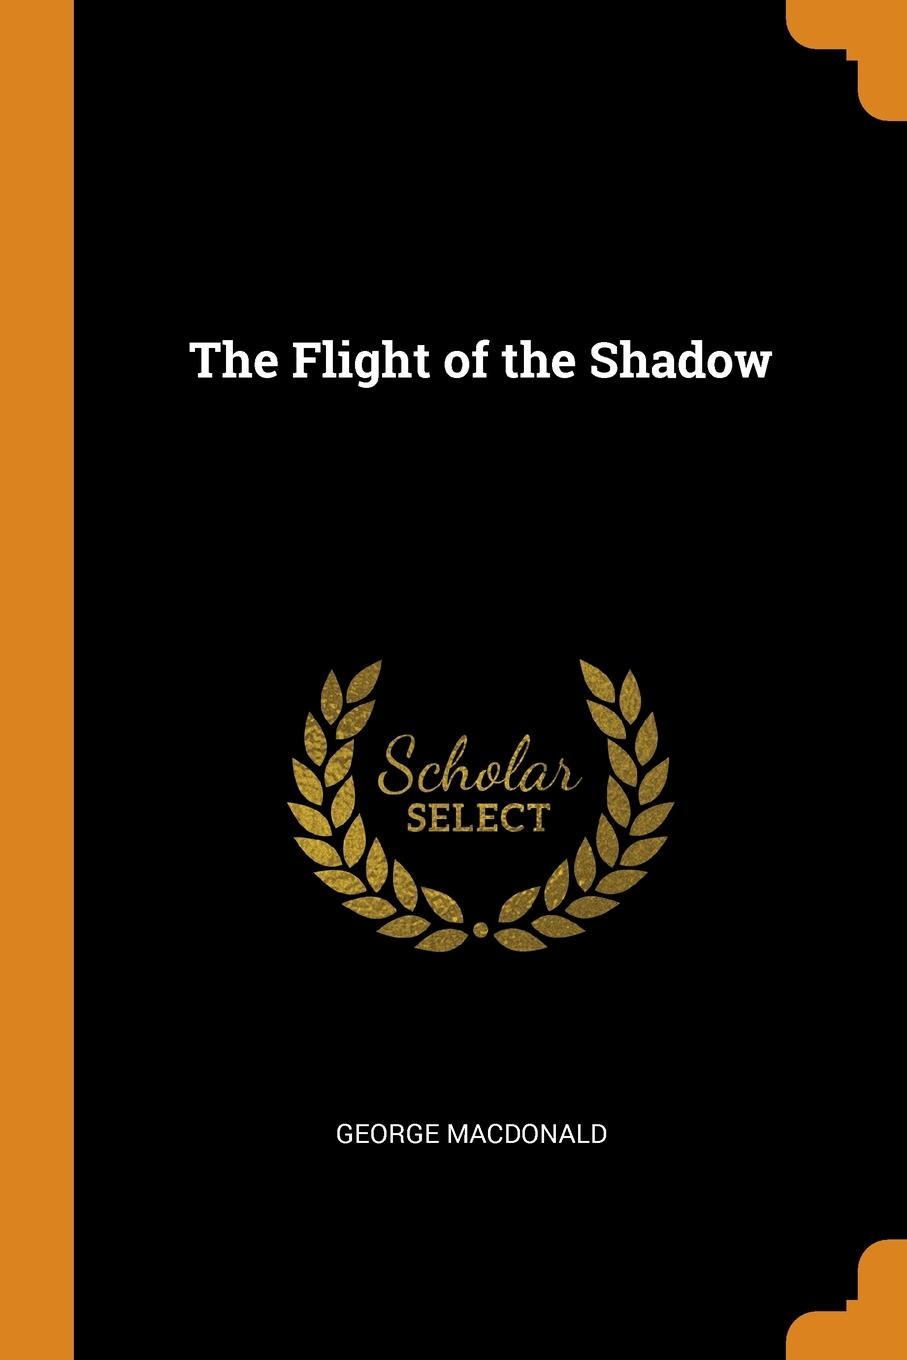 лучшая цена MacDonald George The Flight of the Shadow